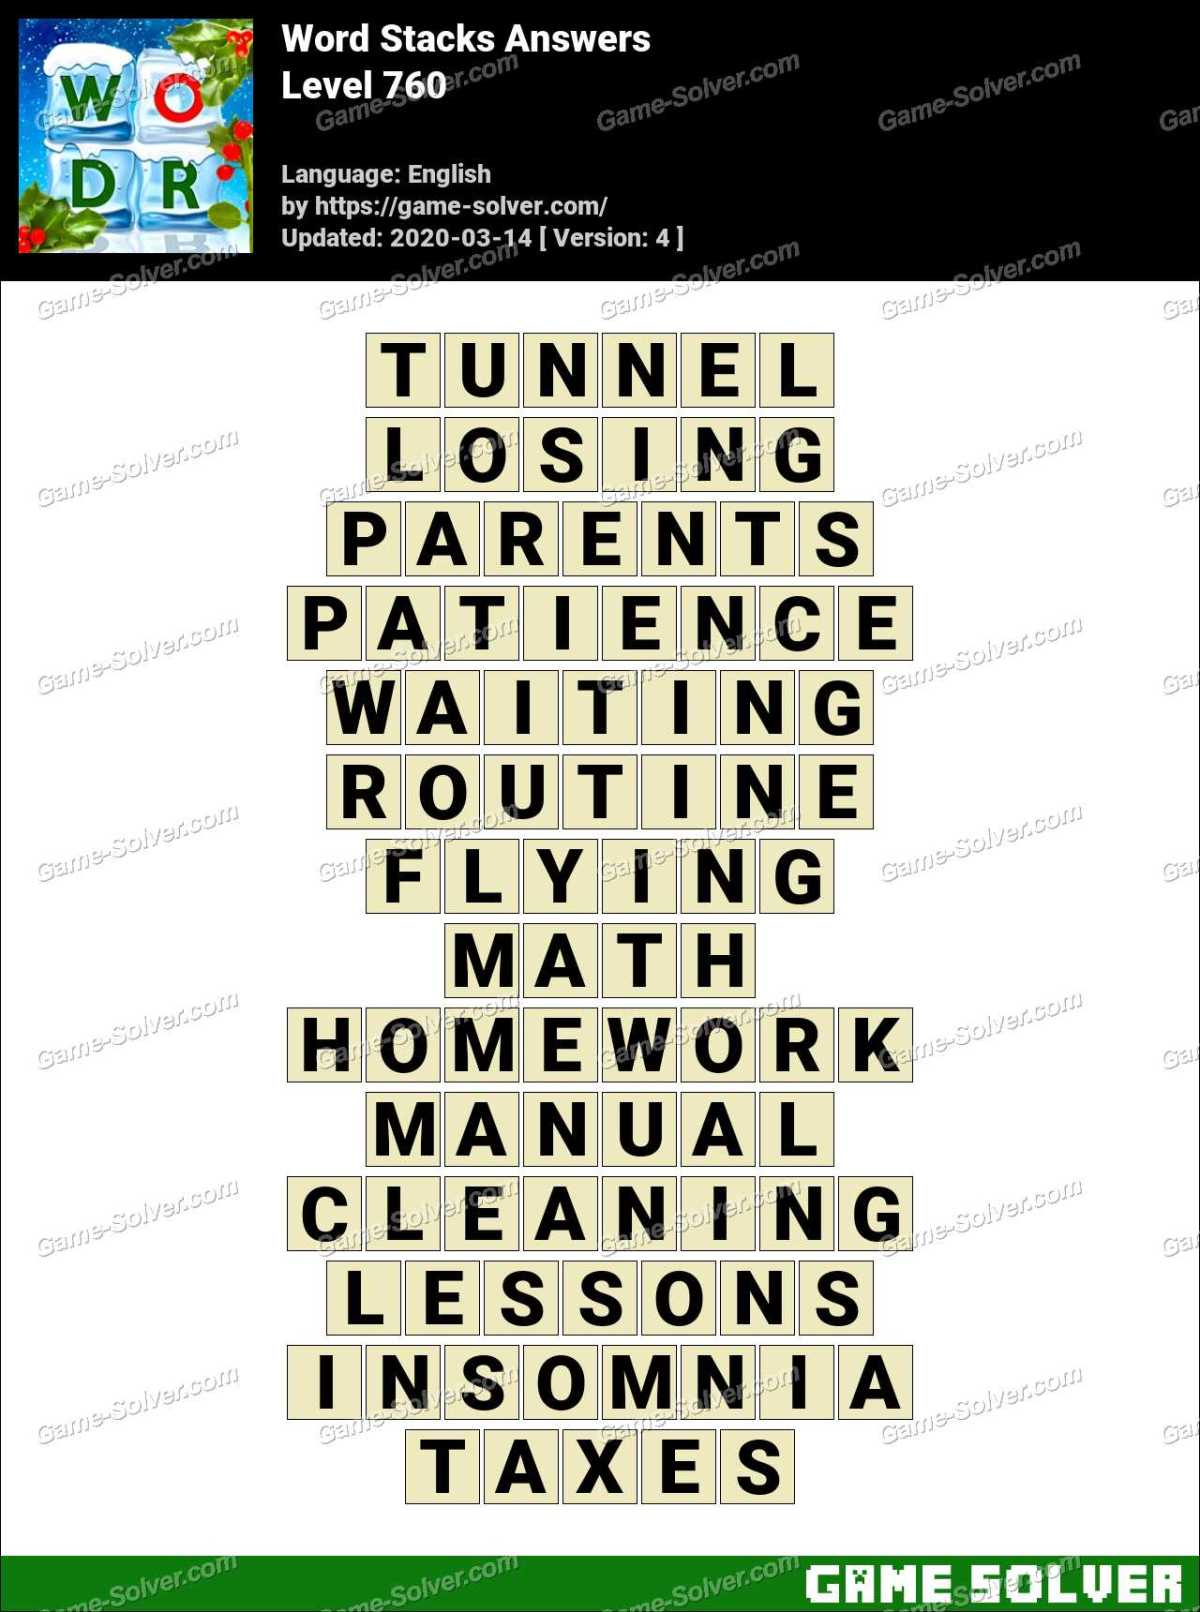 Word Stacks Level 760 Answers